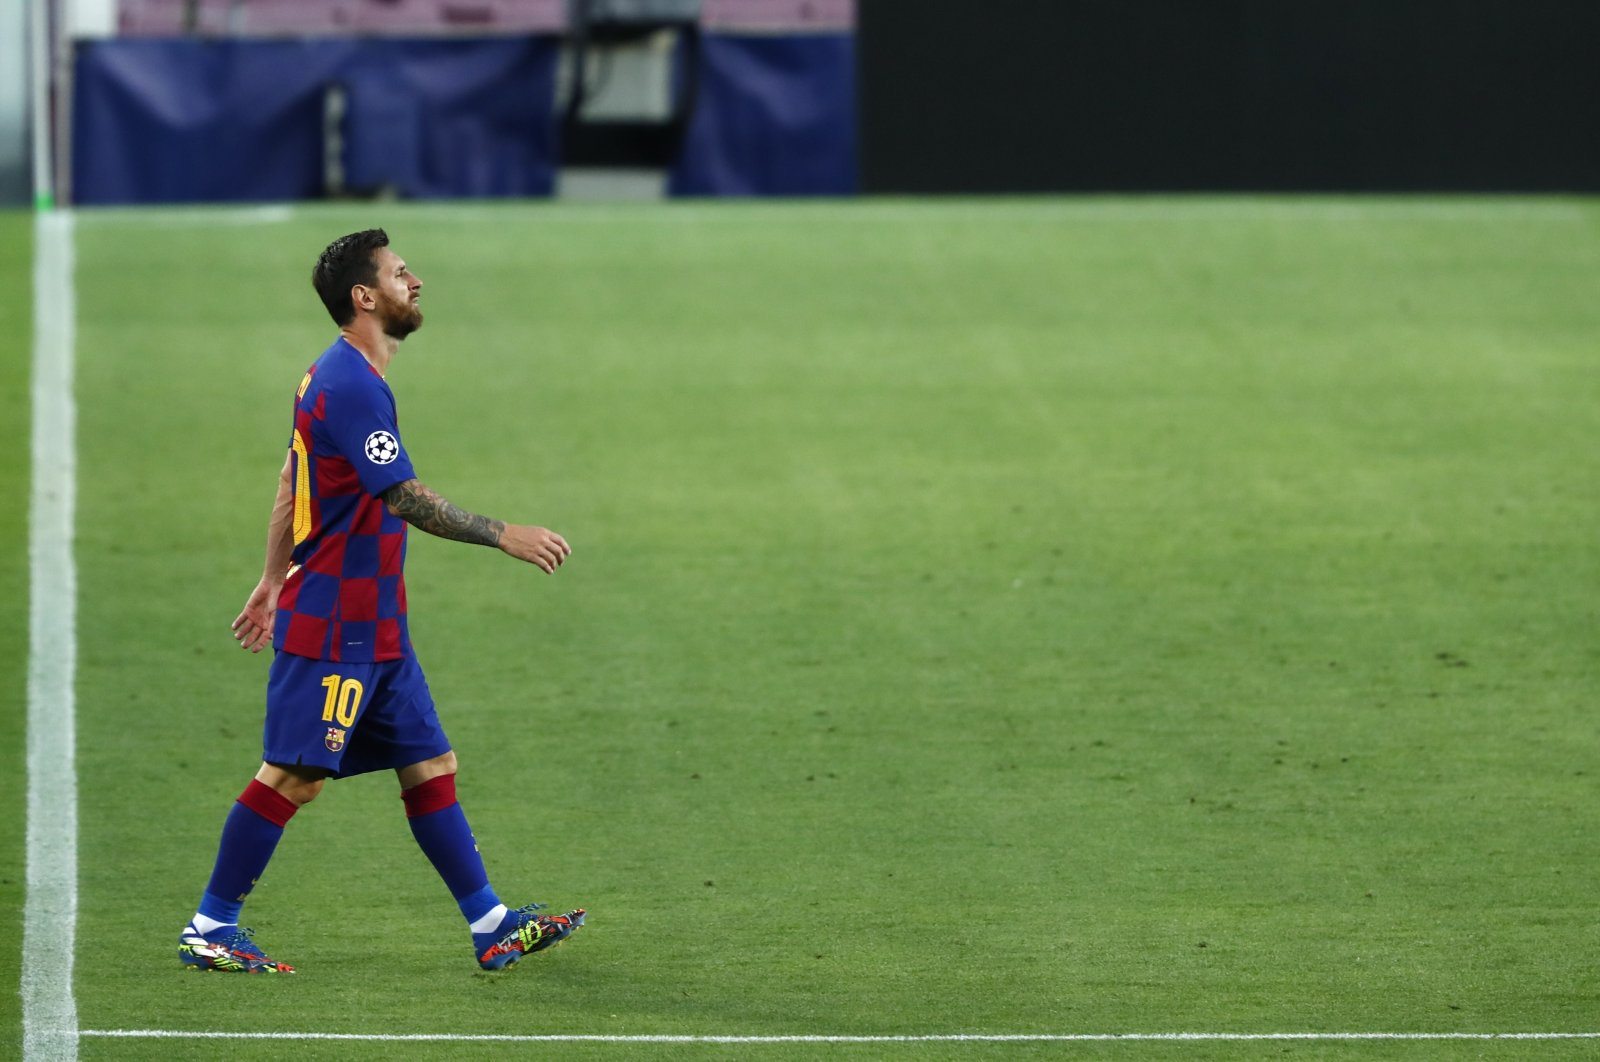 Barcelona's Lionel Messi walks on the field for the Champions League round of 16, second leg football match between Barcelona and Napoli at the Camp Nou Stadium in Barcelona, Spain, Saturday, Aug. 8, 2020. (AP Photo)